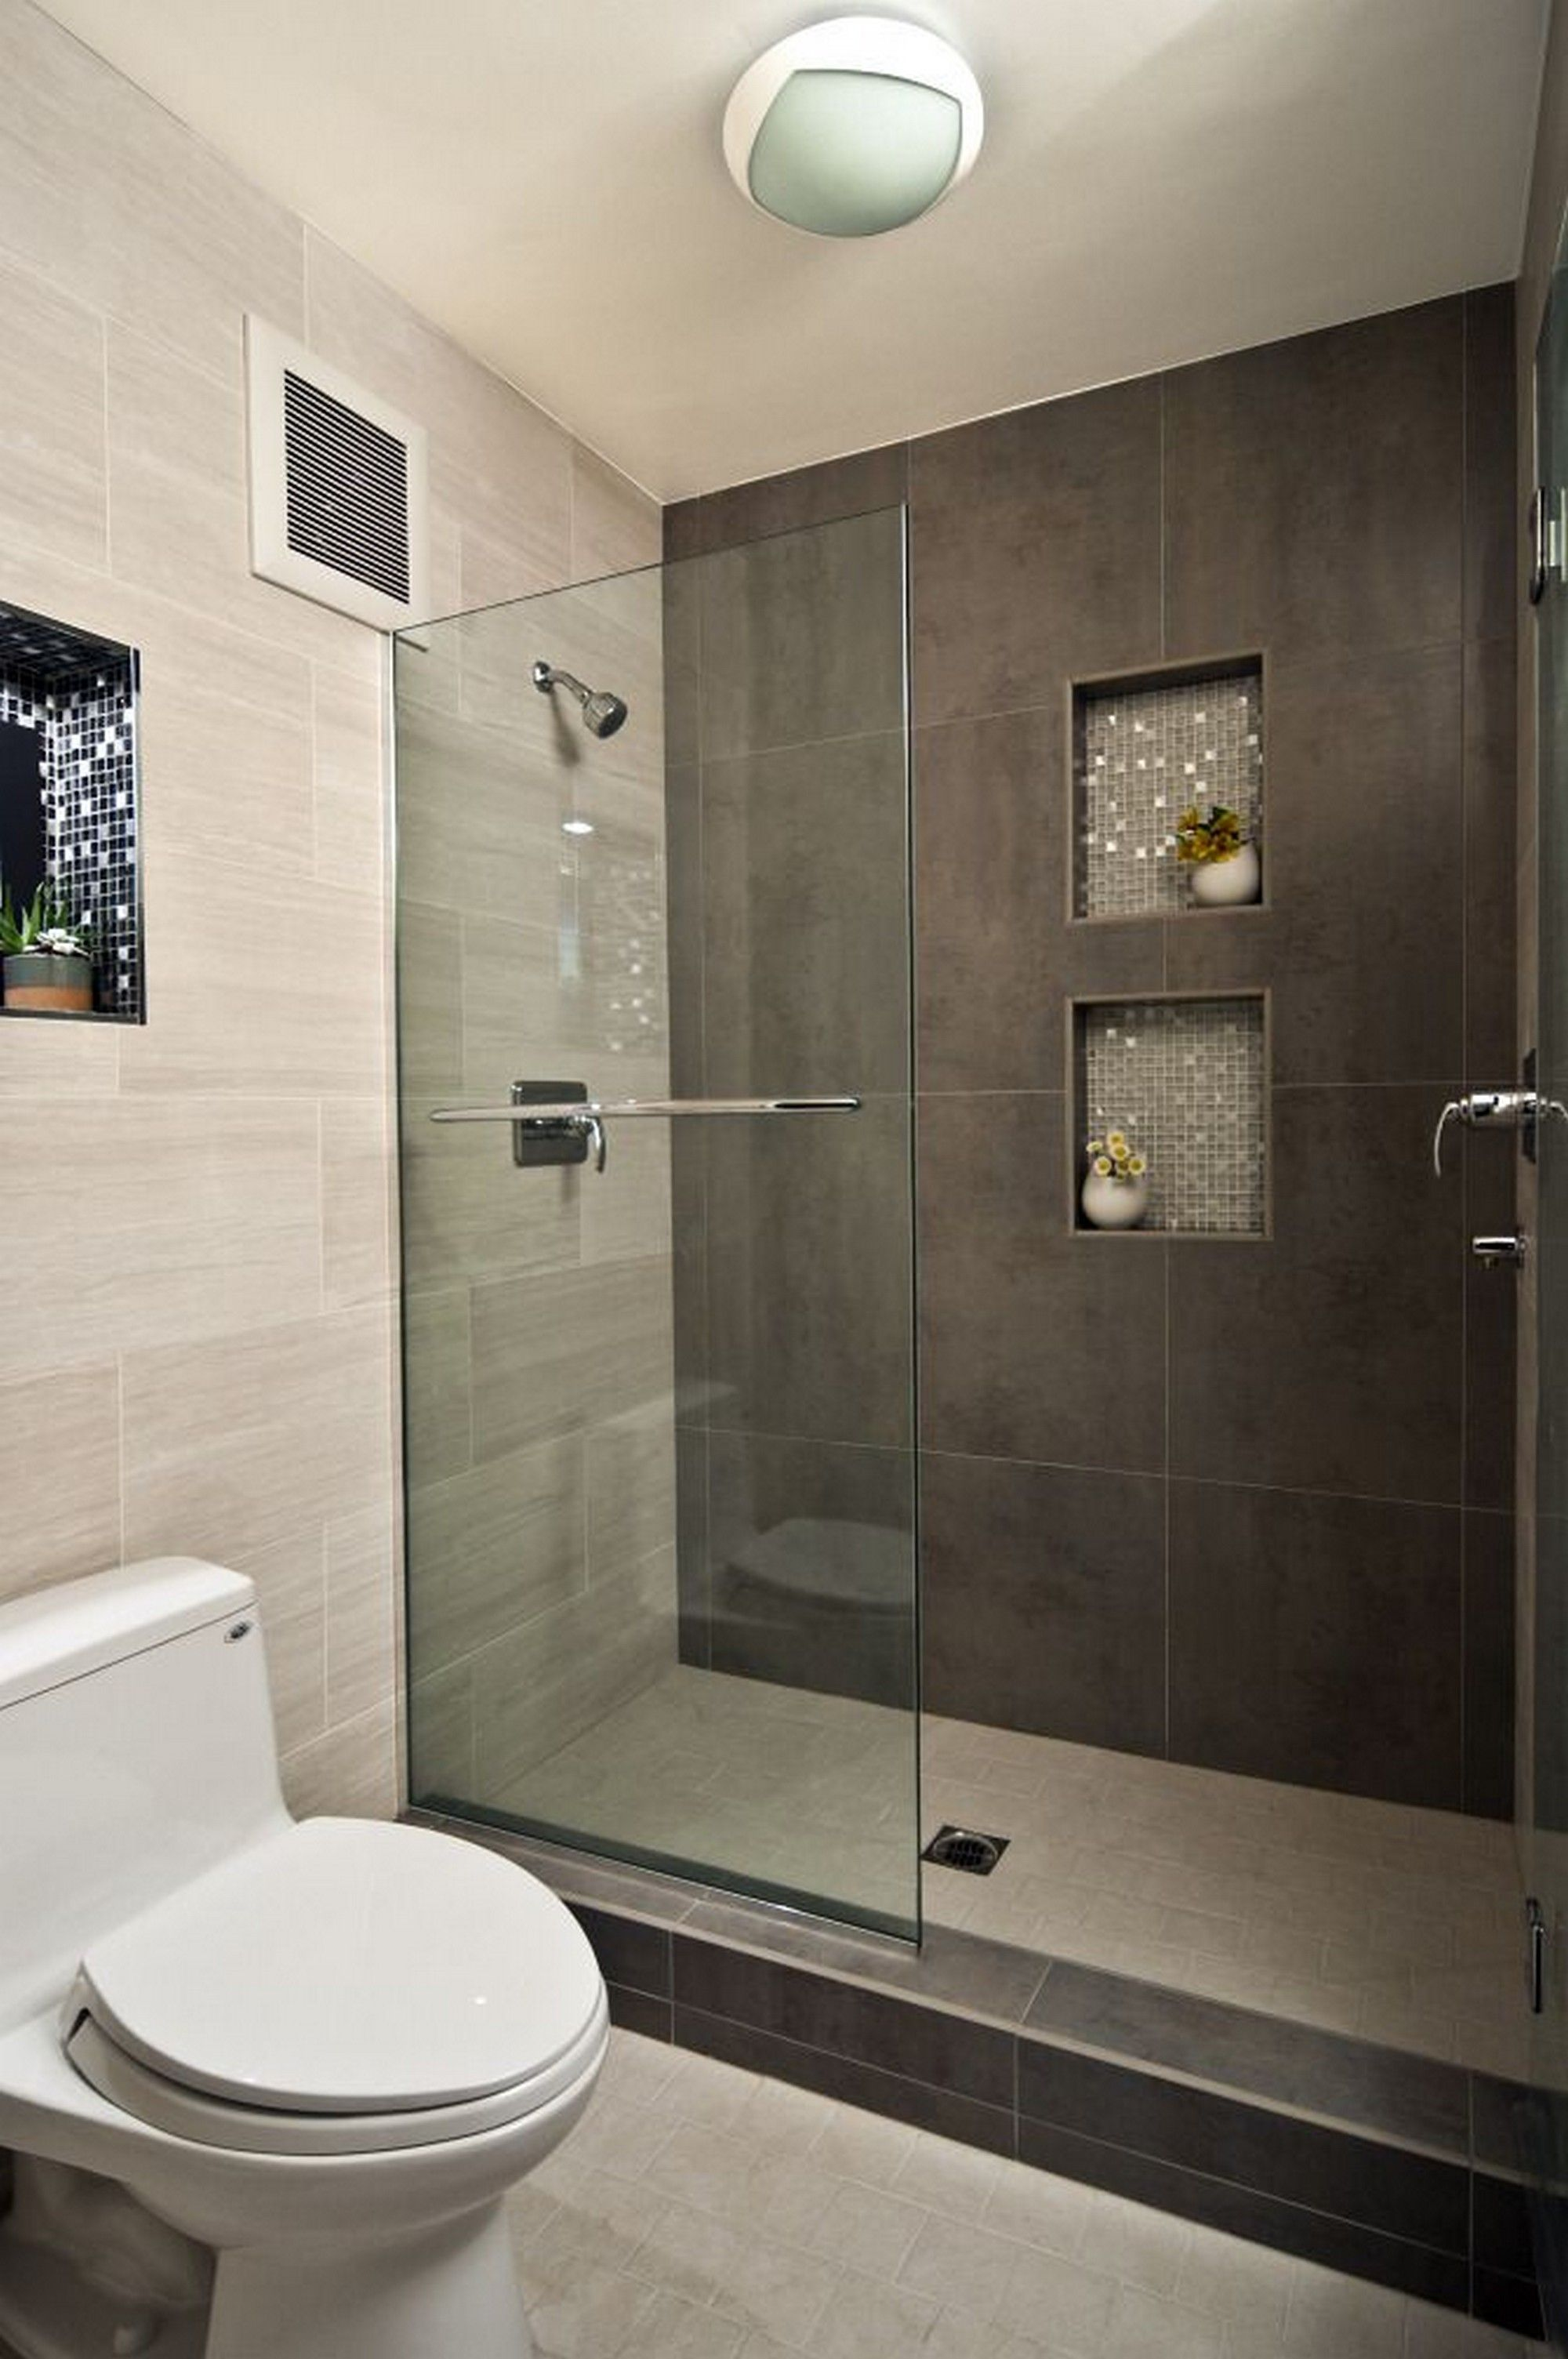 Modern Bathroom Design Ideas With Walk In Shower Pinterest Small - Small bathroom remodel with walk in shower